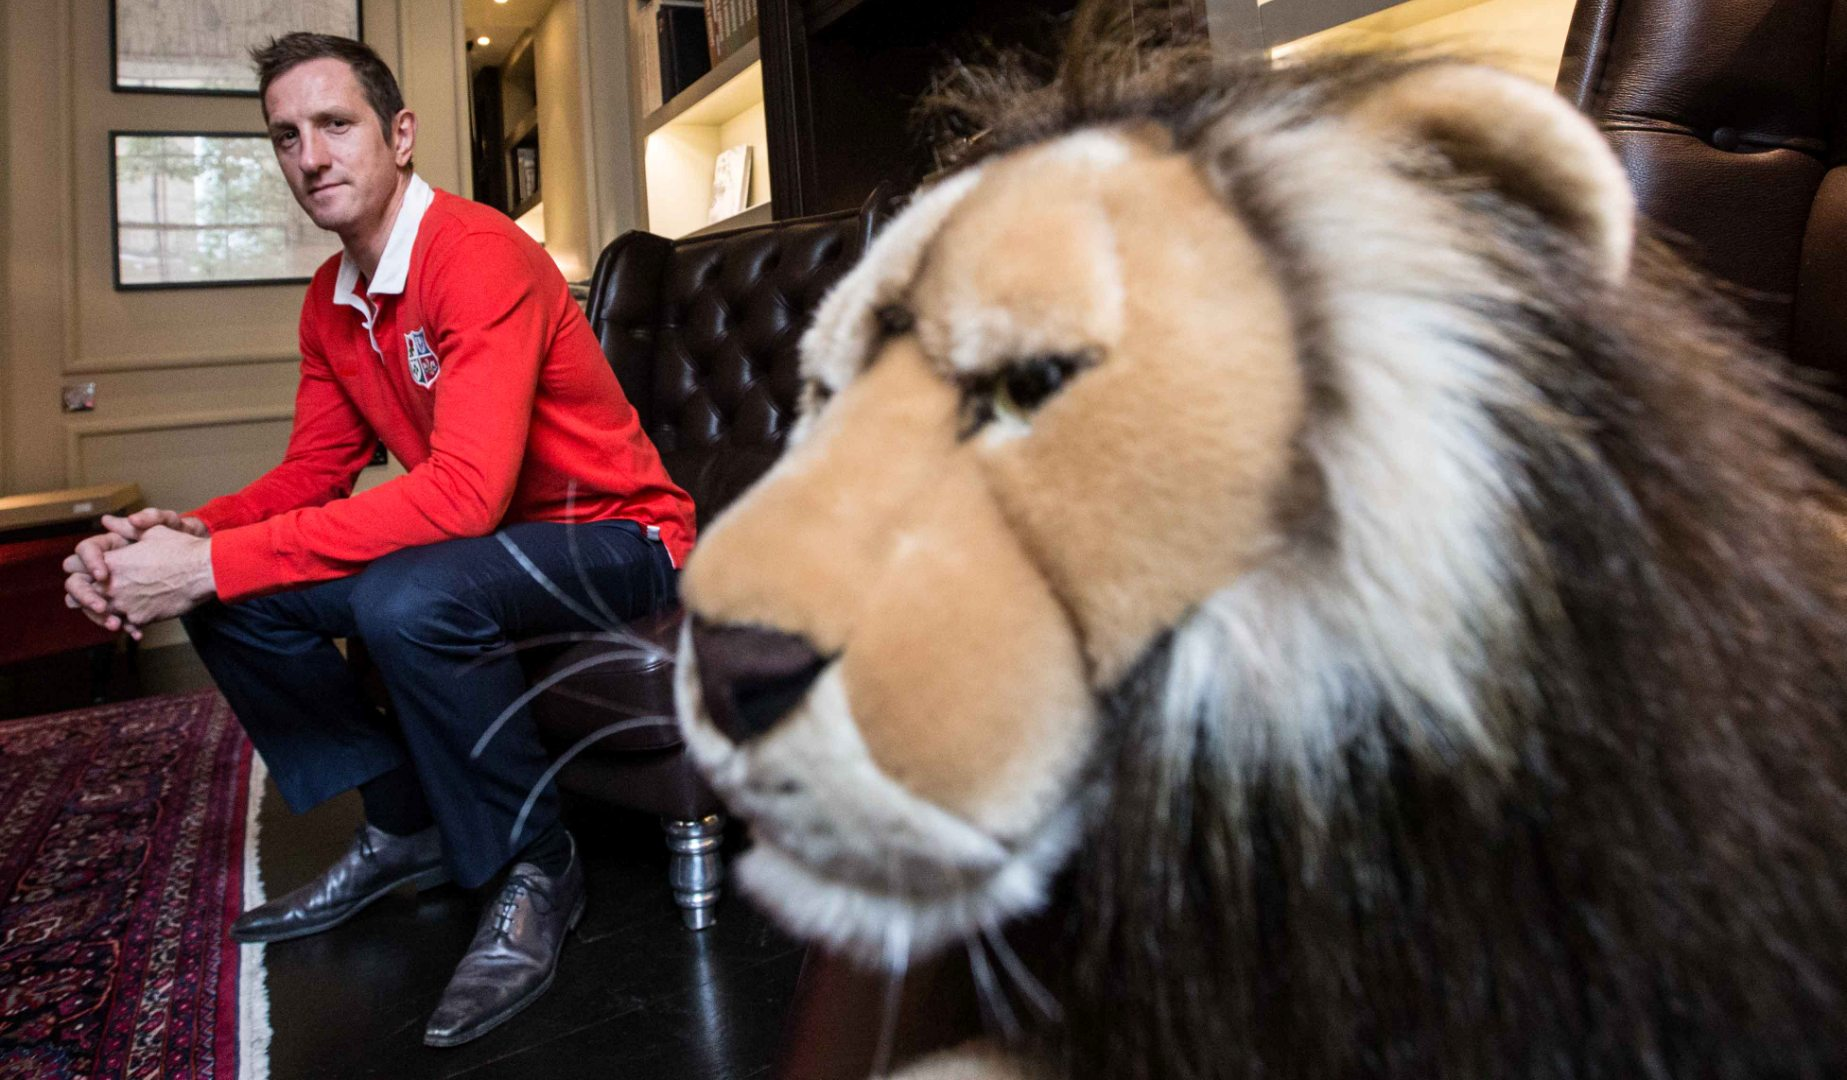 Greenwood: Lions tours are the pinnacle